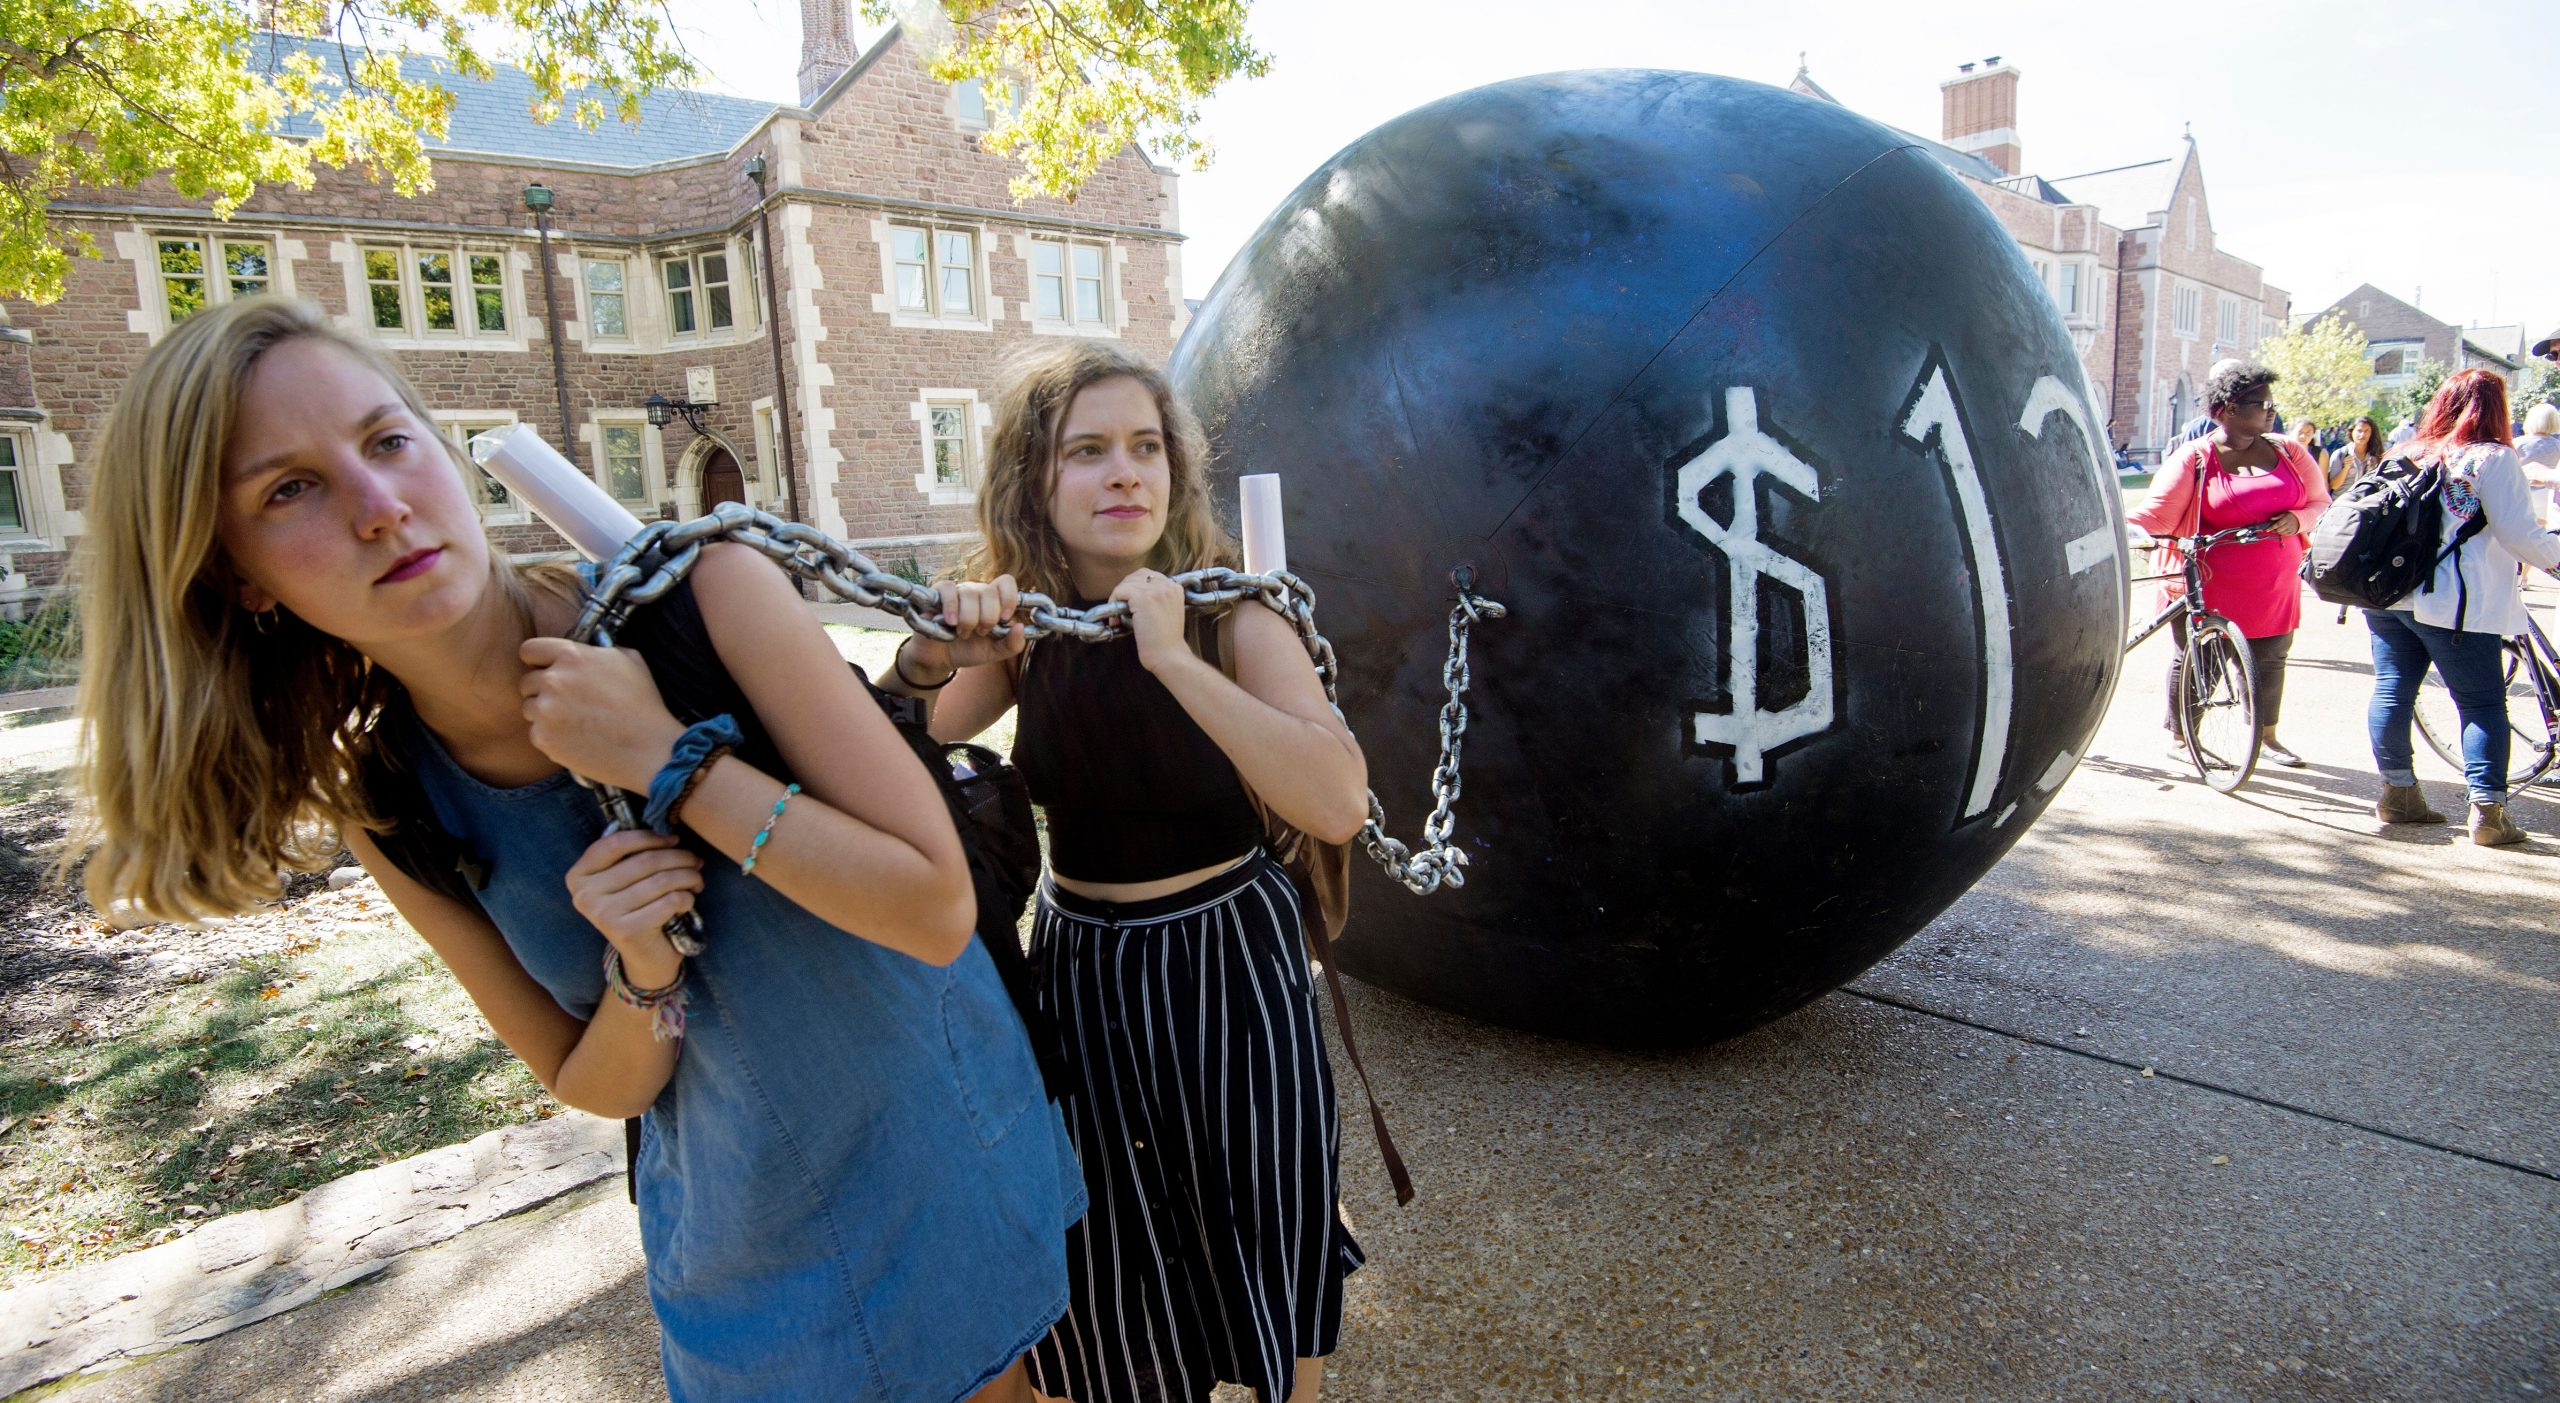 The morality of canceling student debt